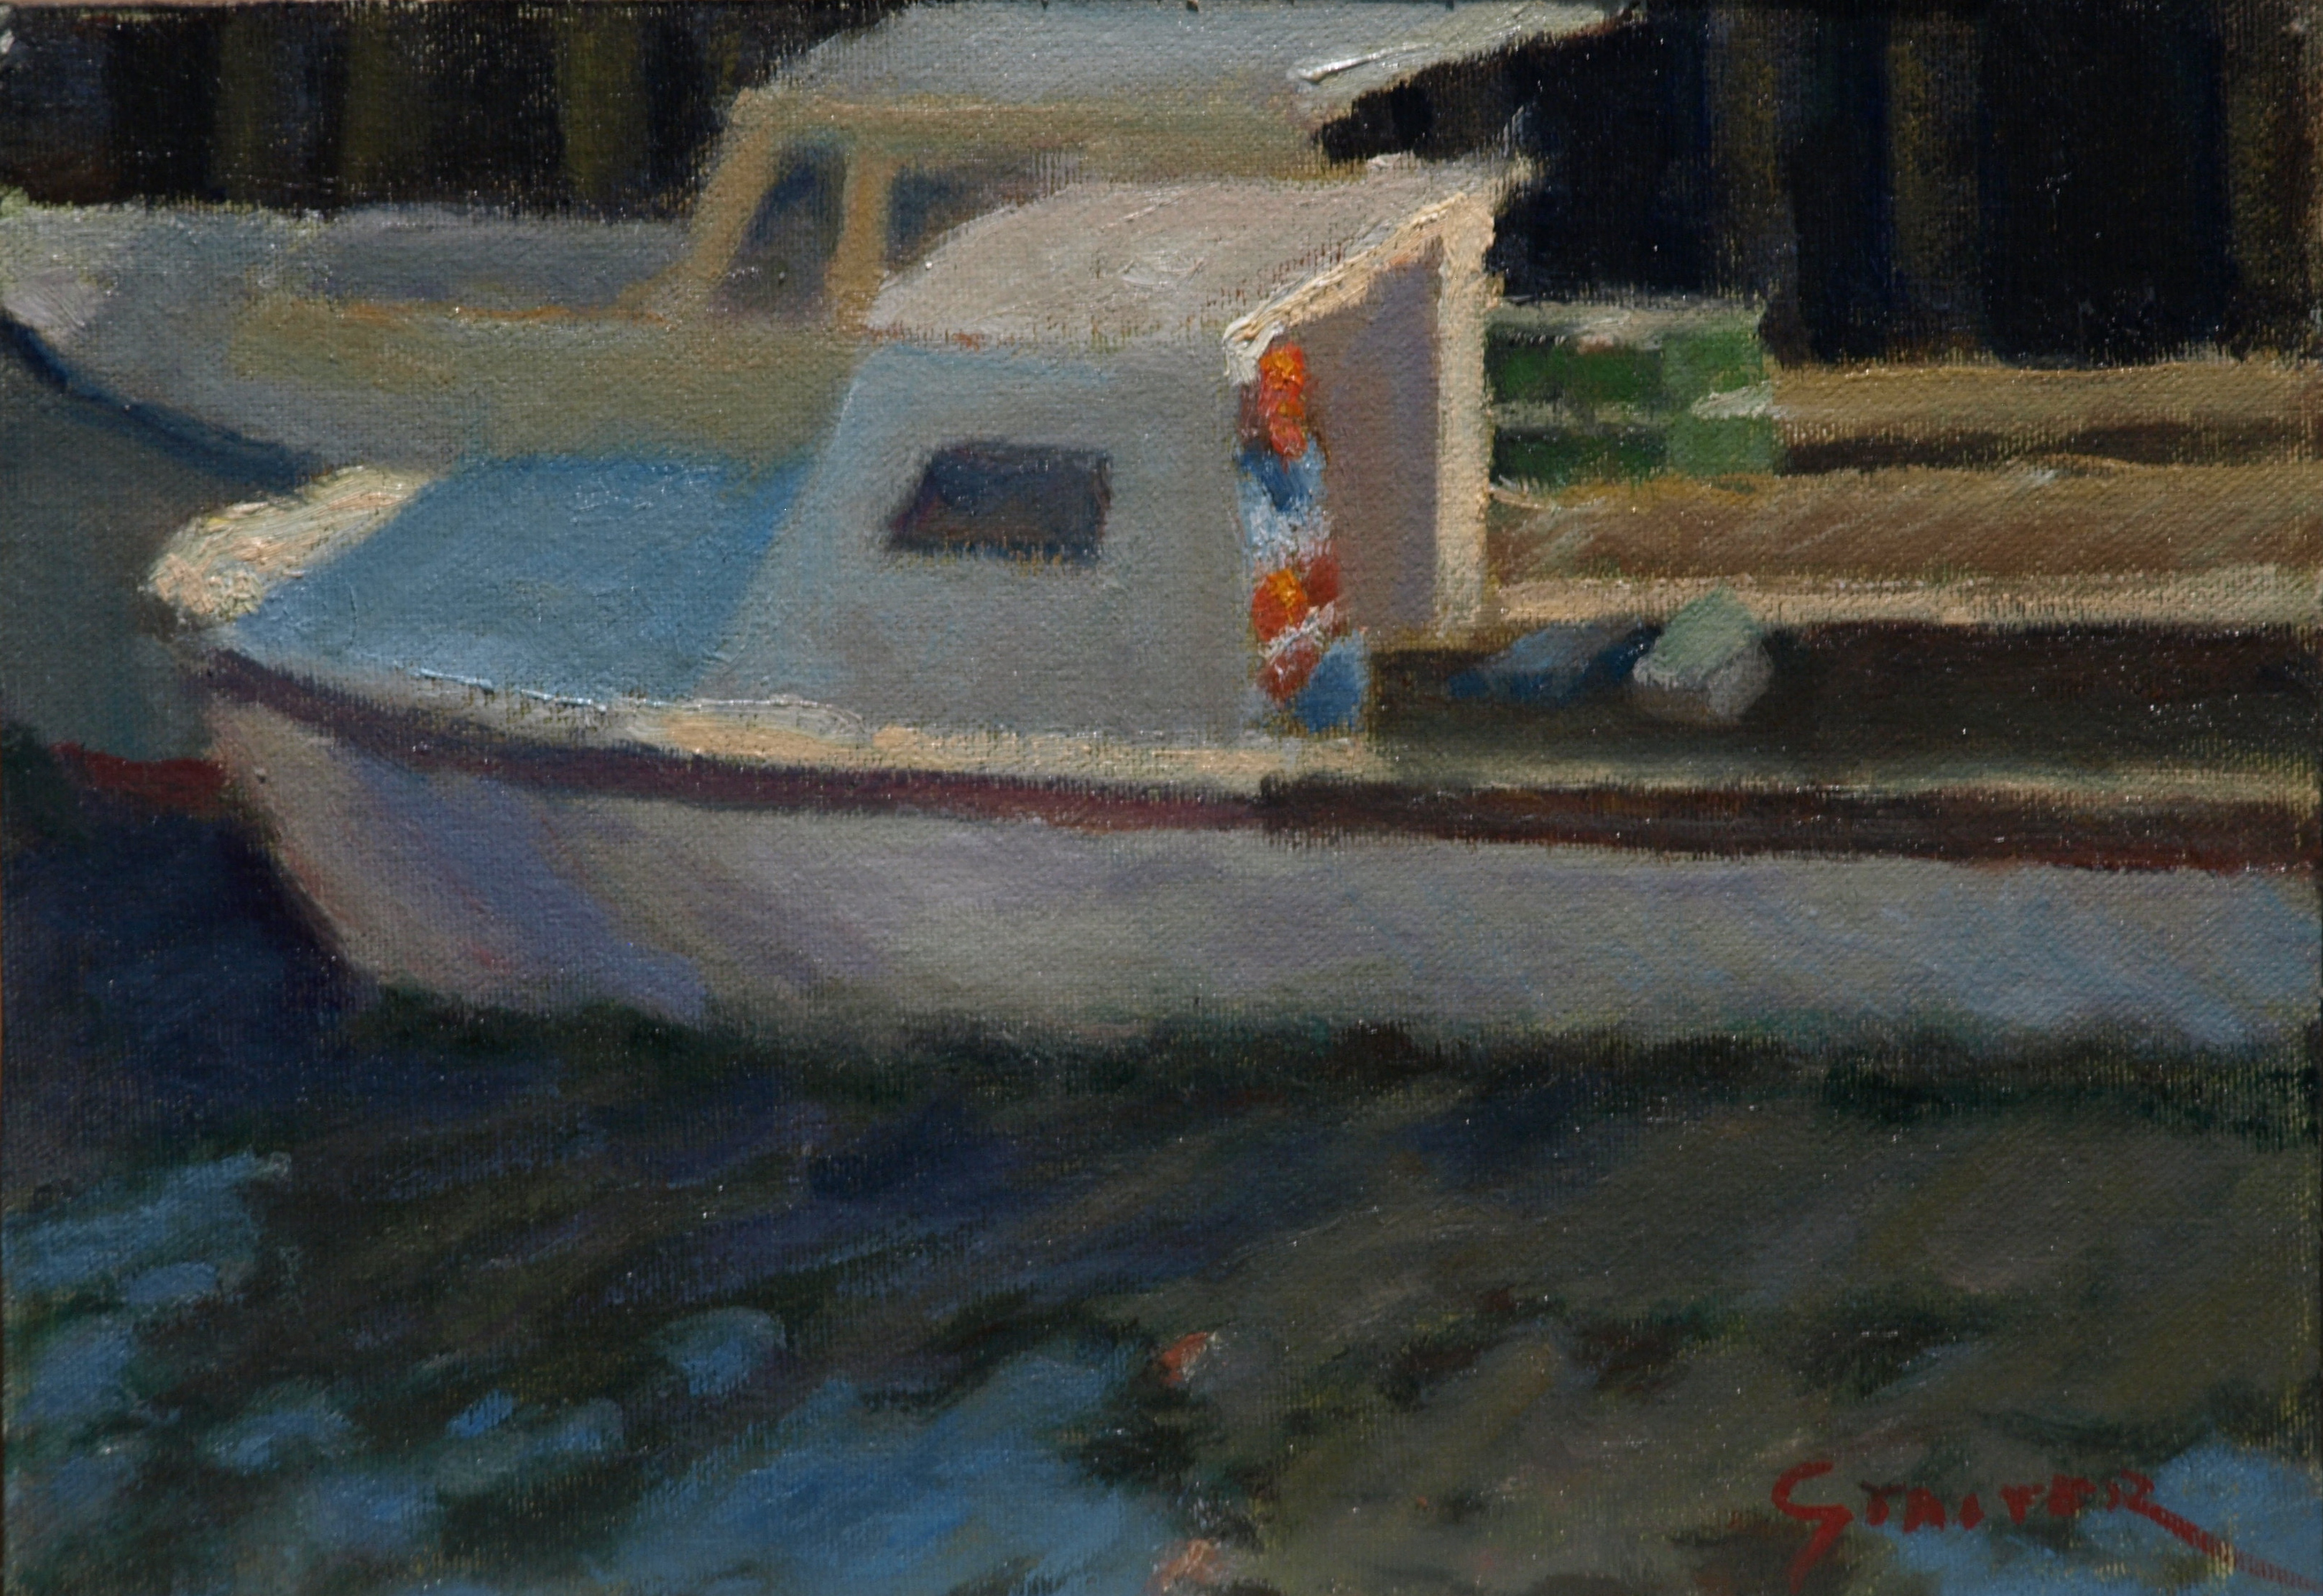 Dockside, Oil on Canvas on Panel, 9 x 12 Inches, by Richard Stalter, $225